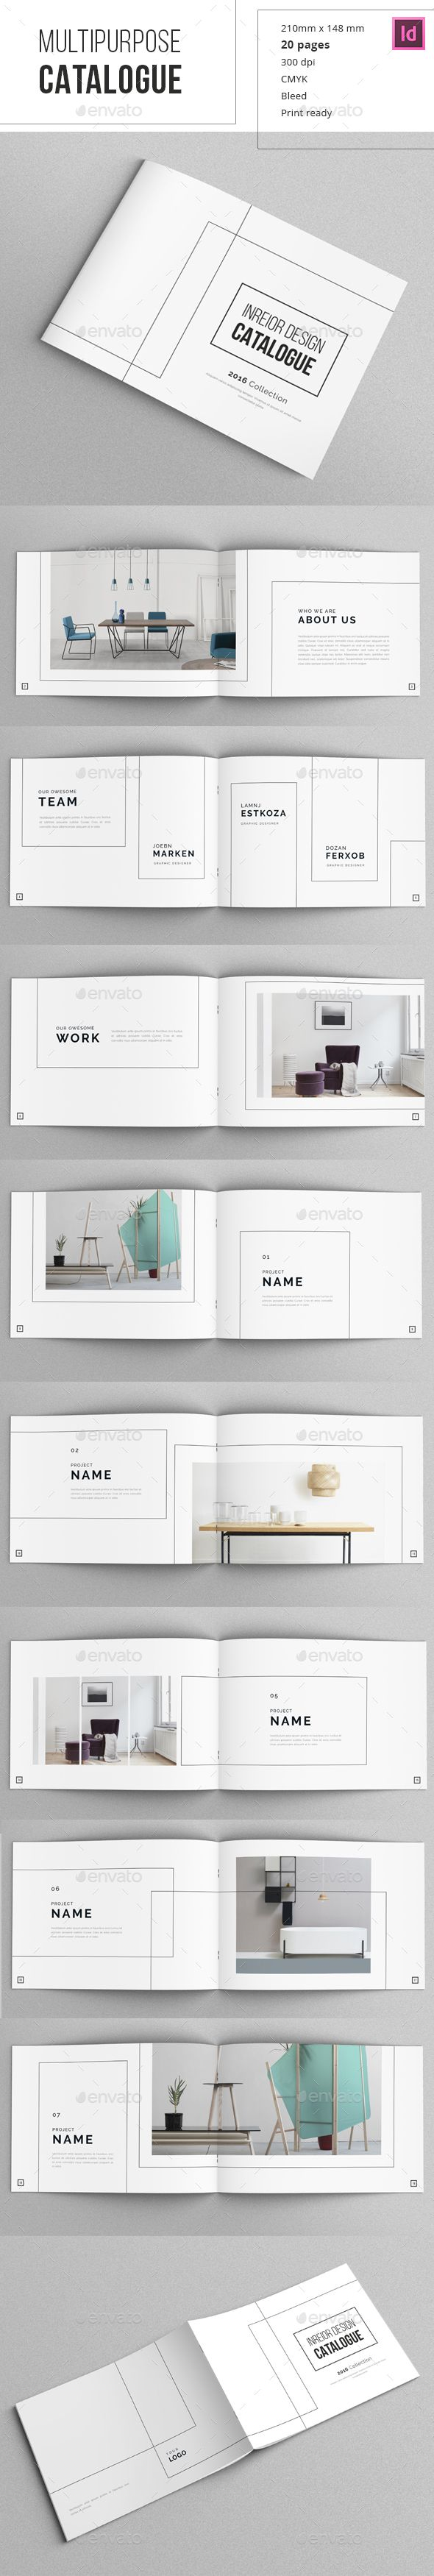 Minimal Indesign Catalogue